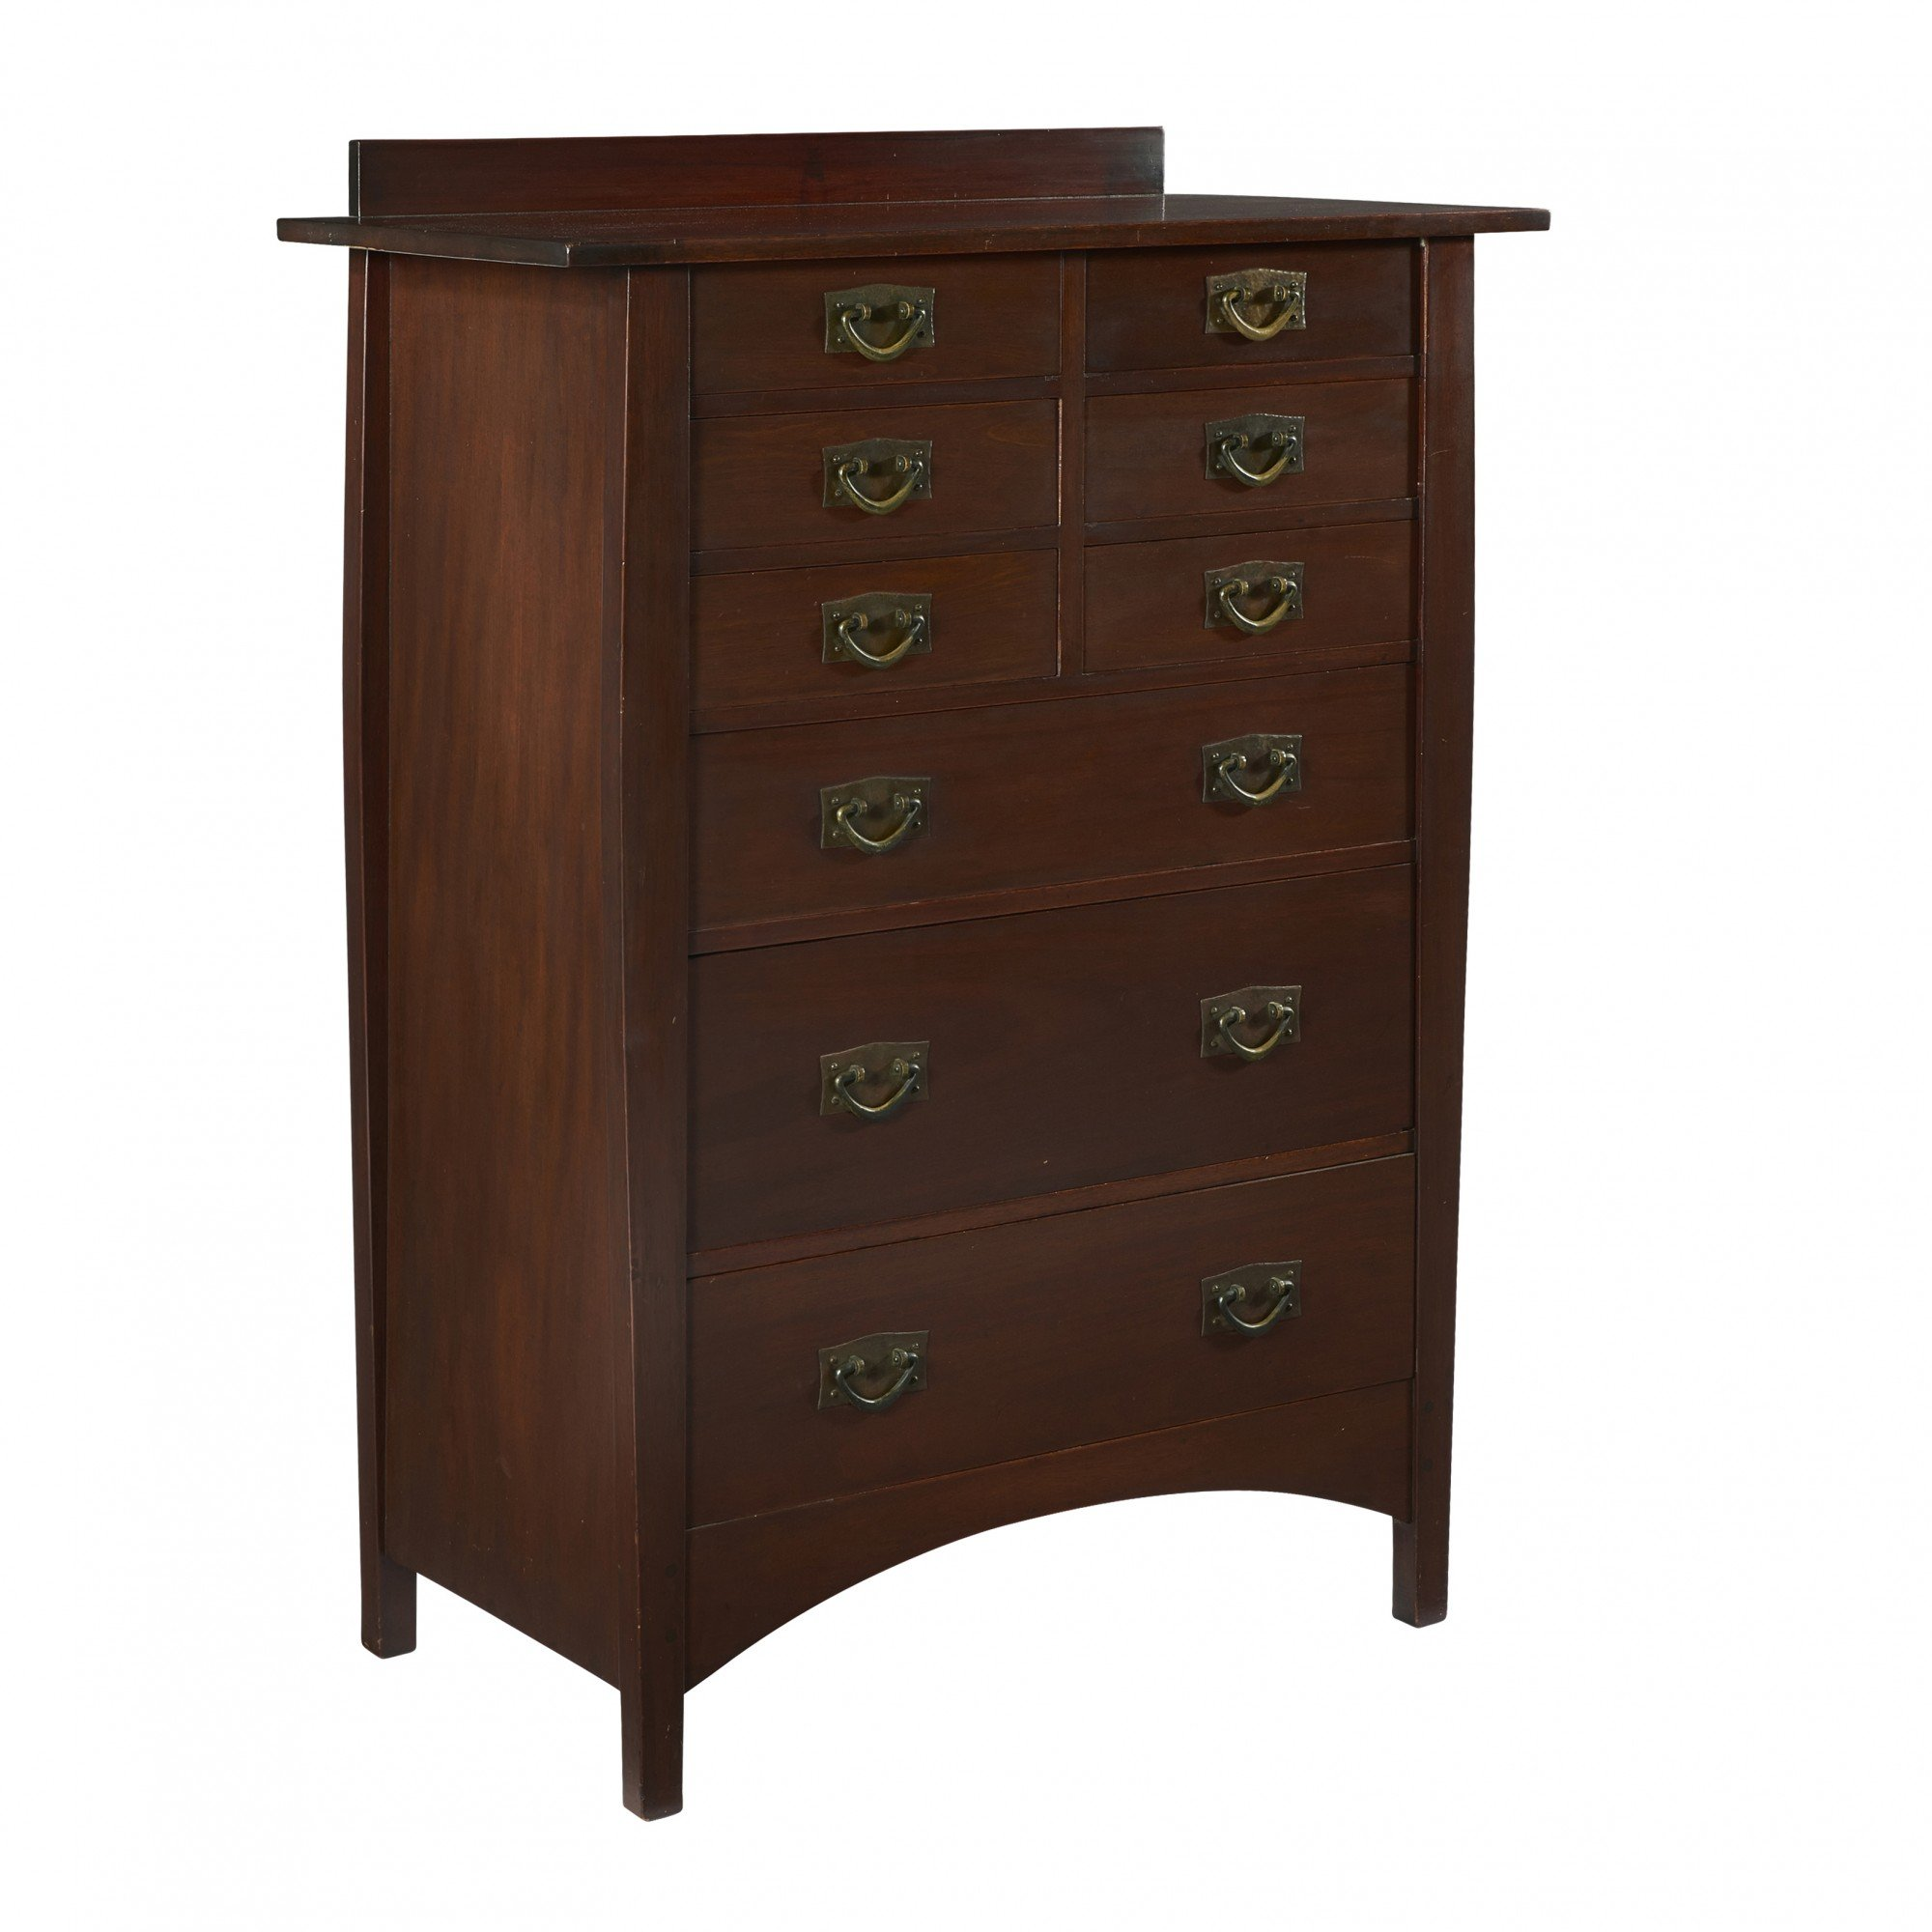 Gustav Stickley Chest of Drawers